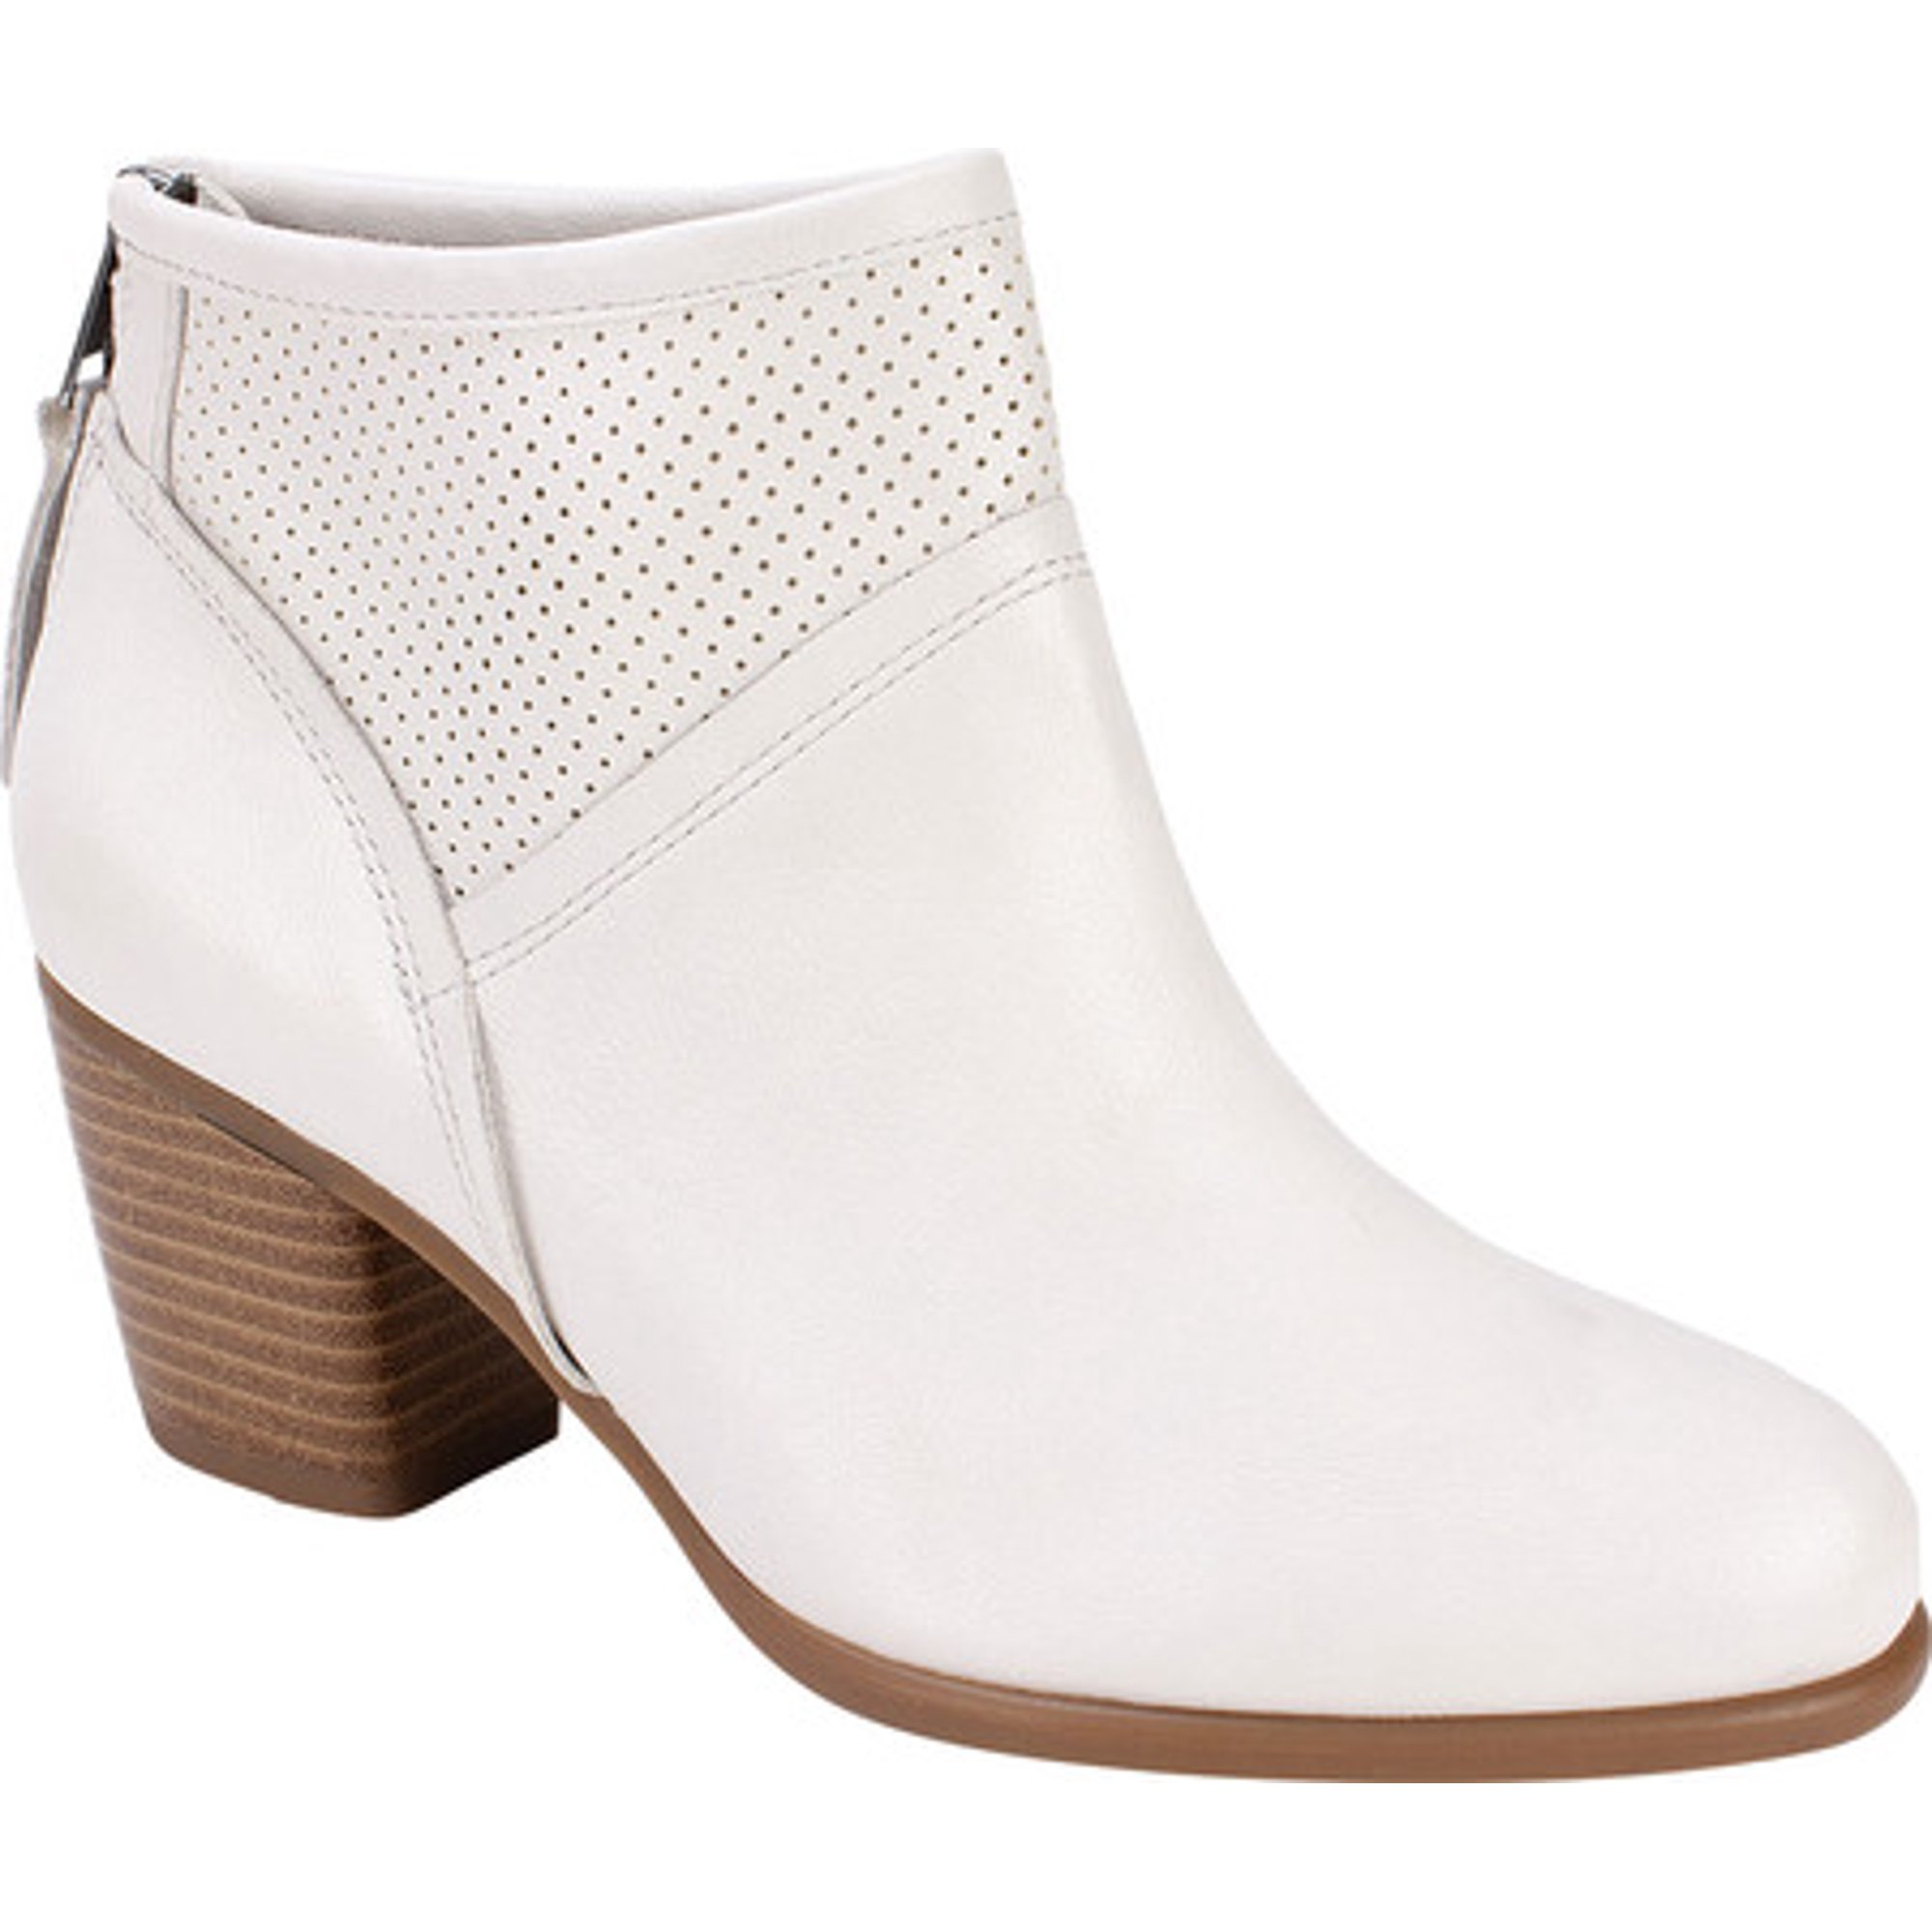 9b982faa89264 Women's White Mountain Galveston Ankle Bootie Sand Nappa Smooth  Polyurethane 9.5 M